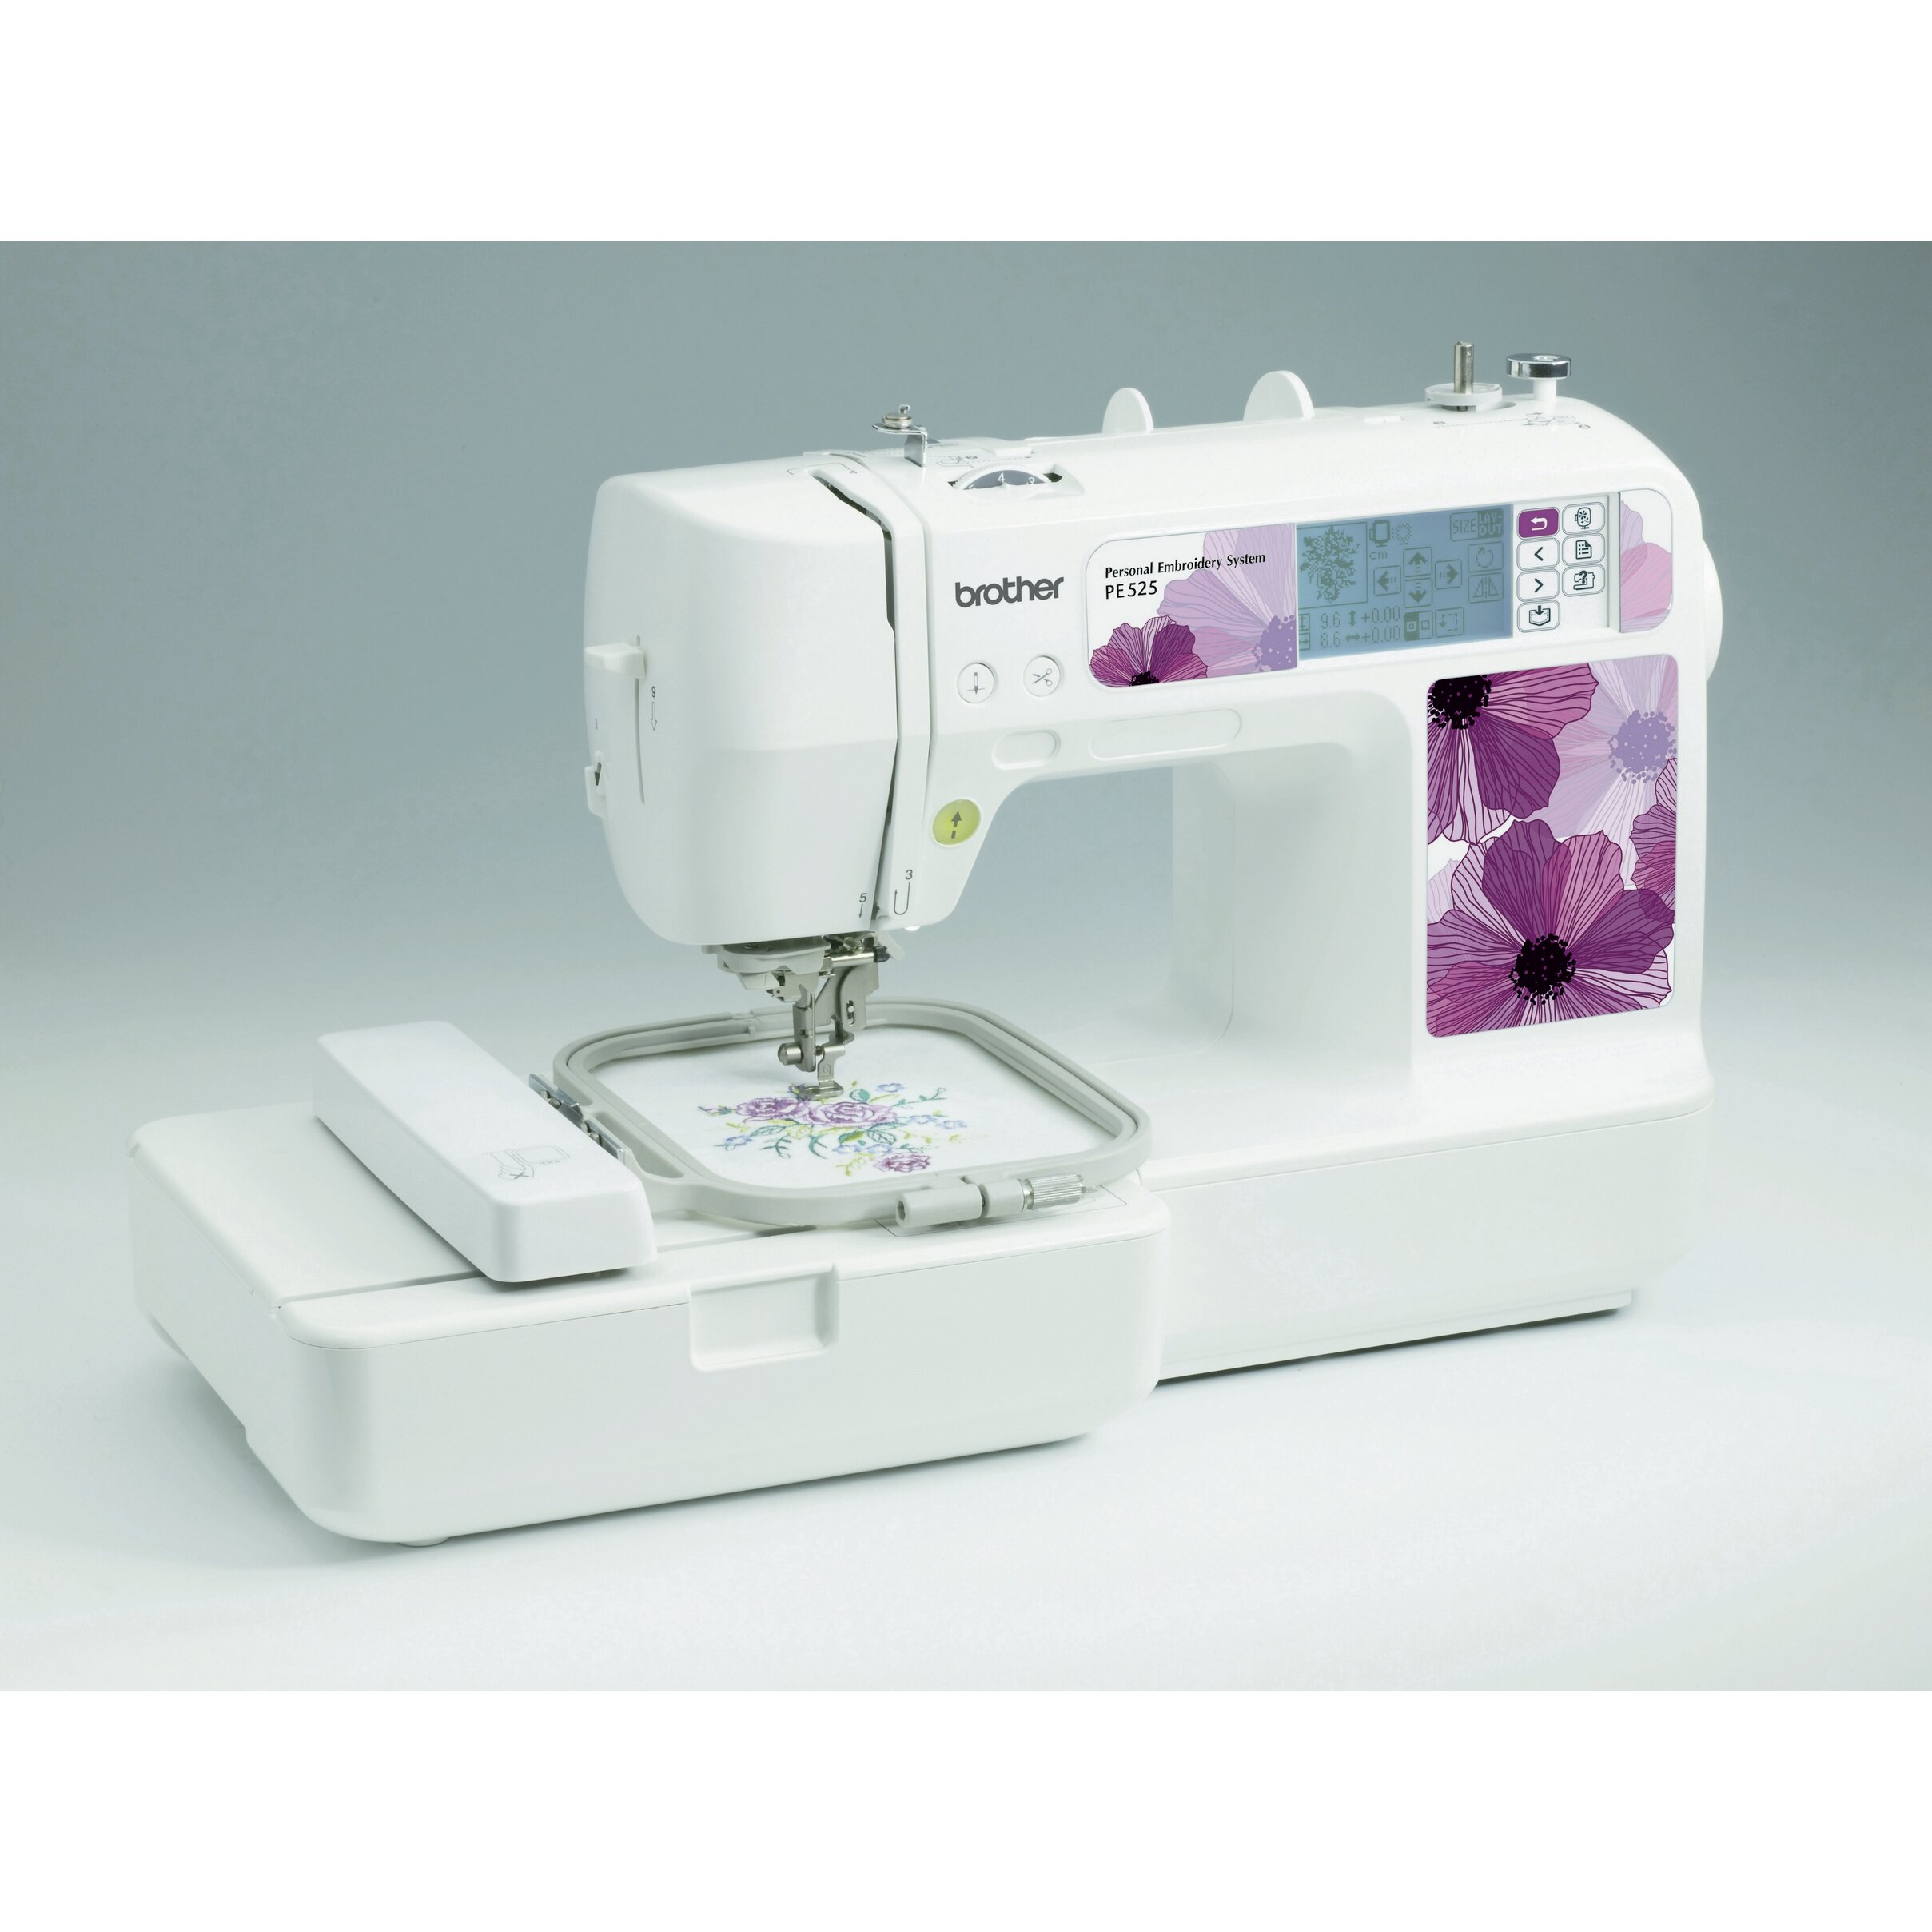 sewing embroidery machine reviews